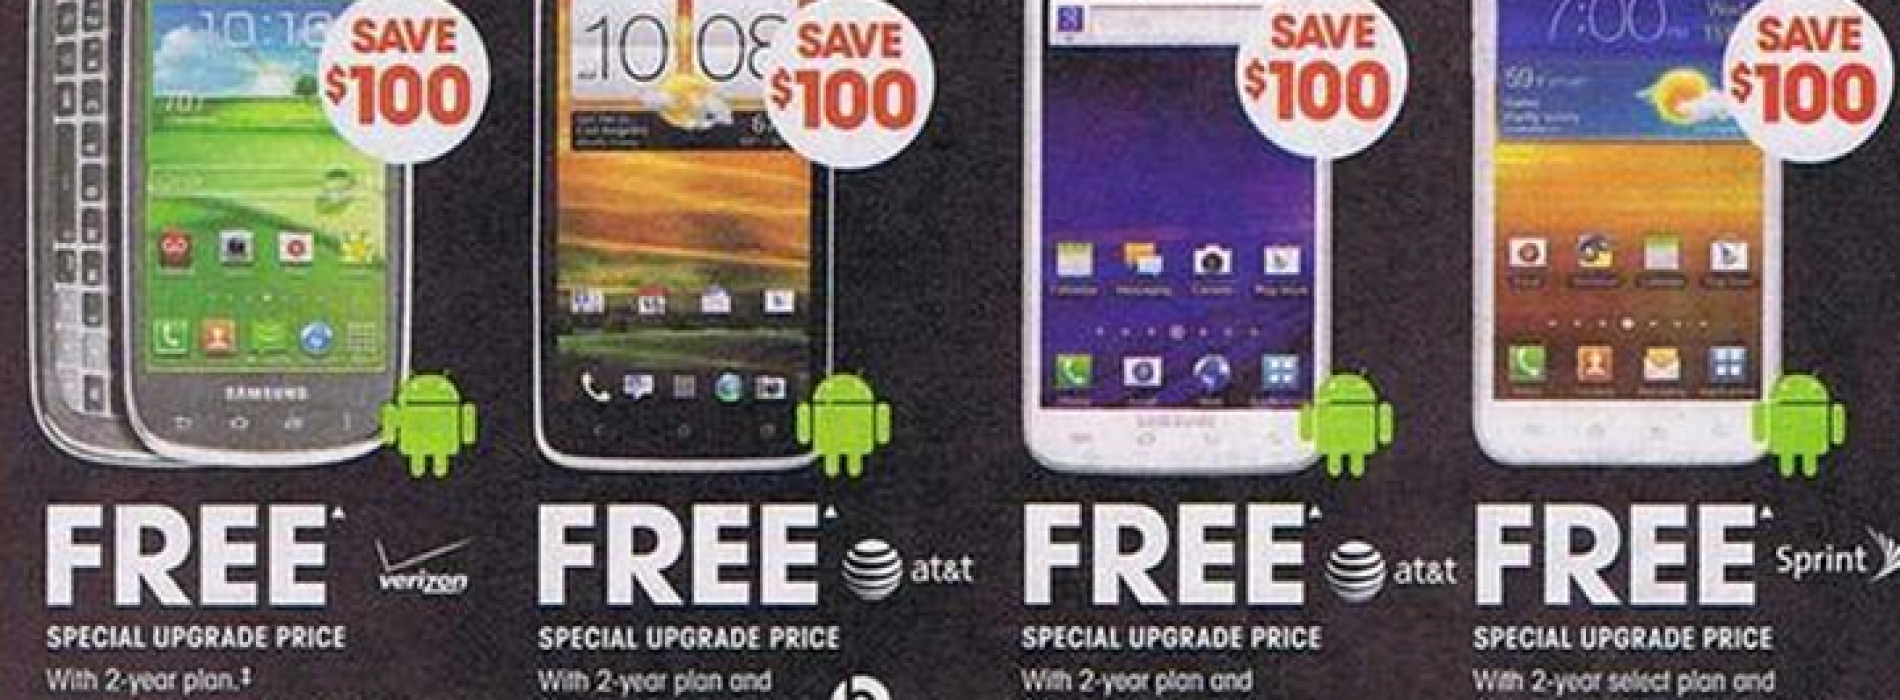 RadioShack's Black Friday ad leaks with multiple Android savings, freebies